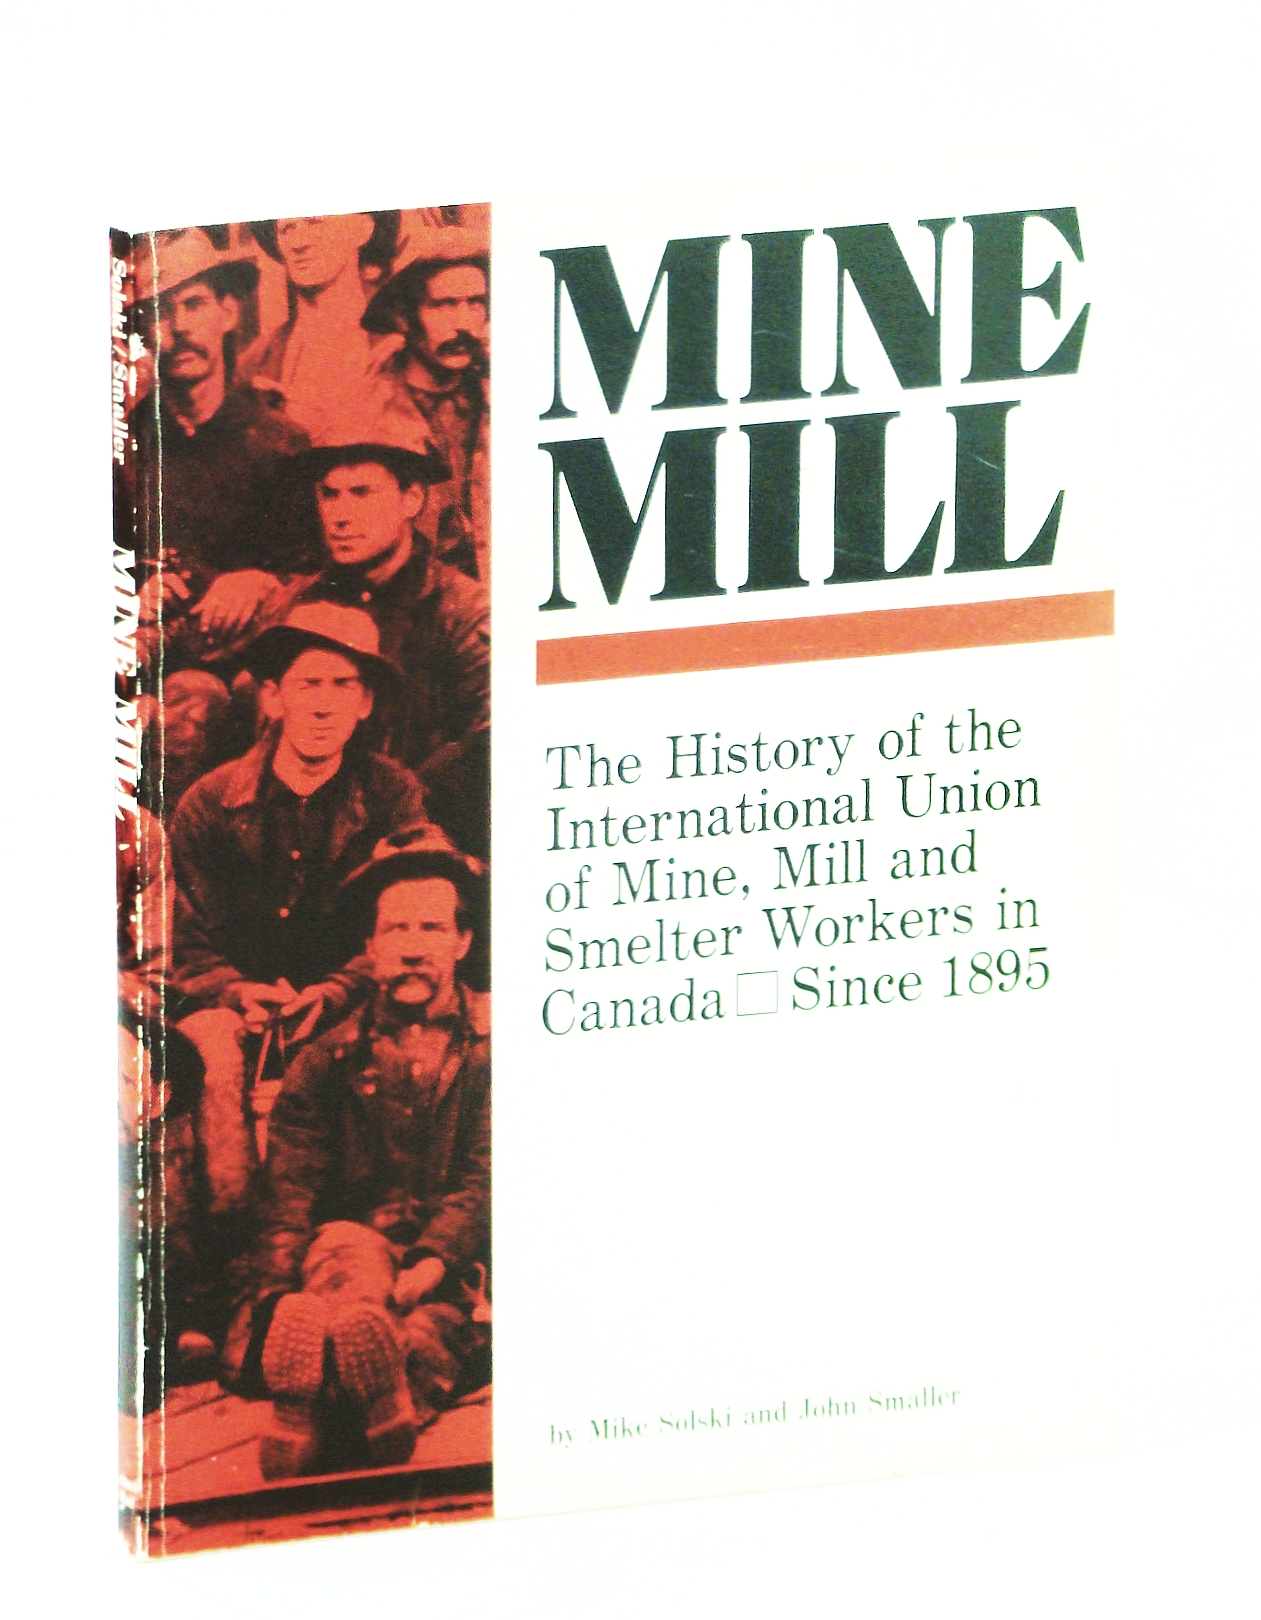 Image for Mine Mill: The History of the International Union of Mine, Mill, and Smelter Workers in Canada Since 1895